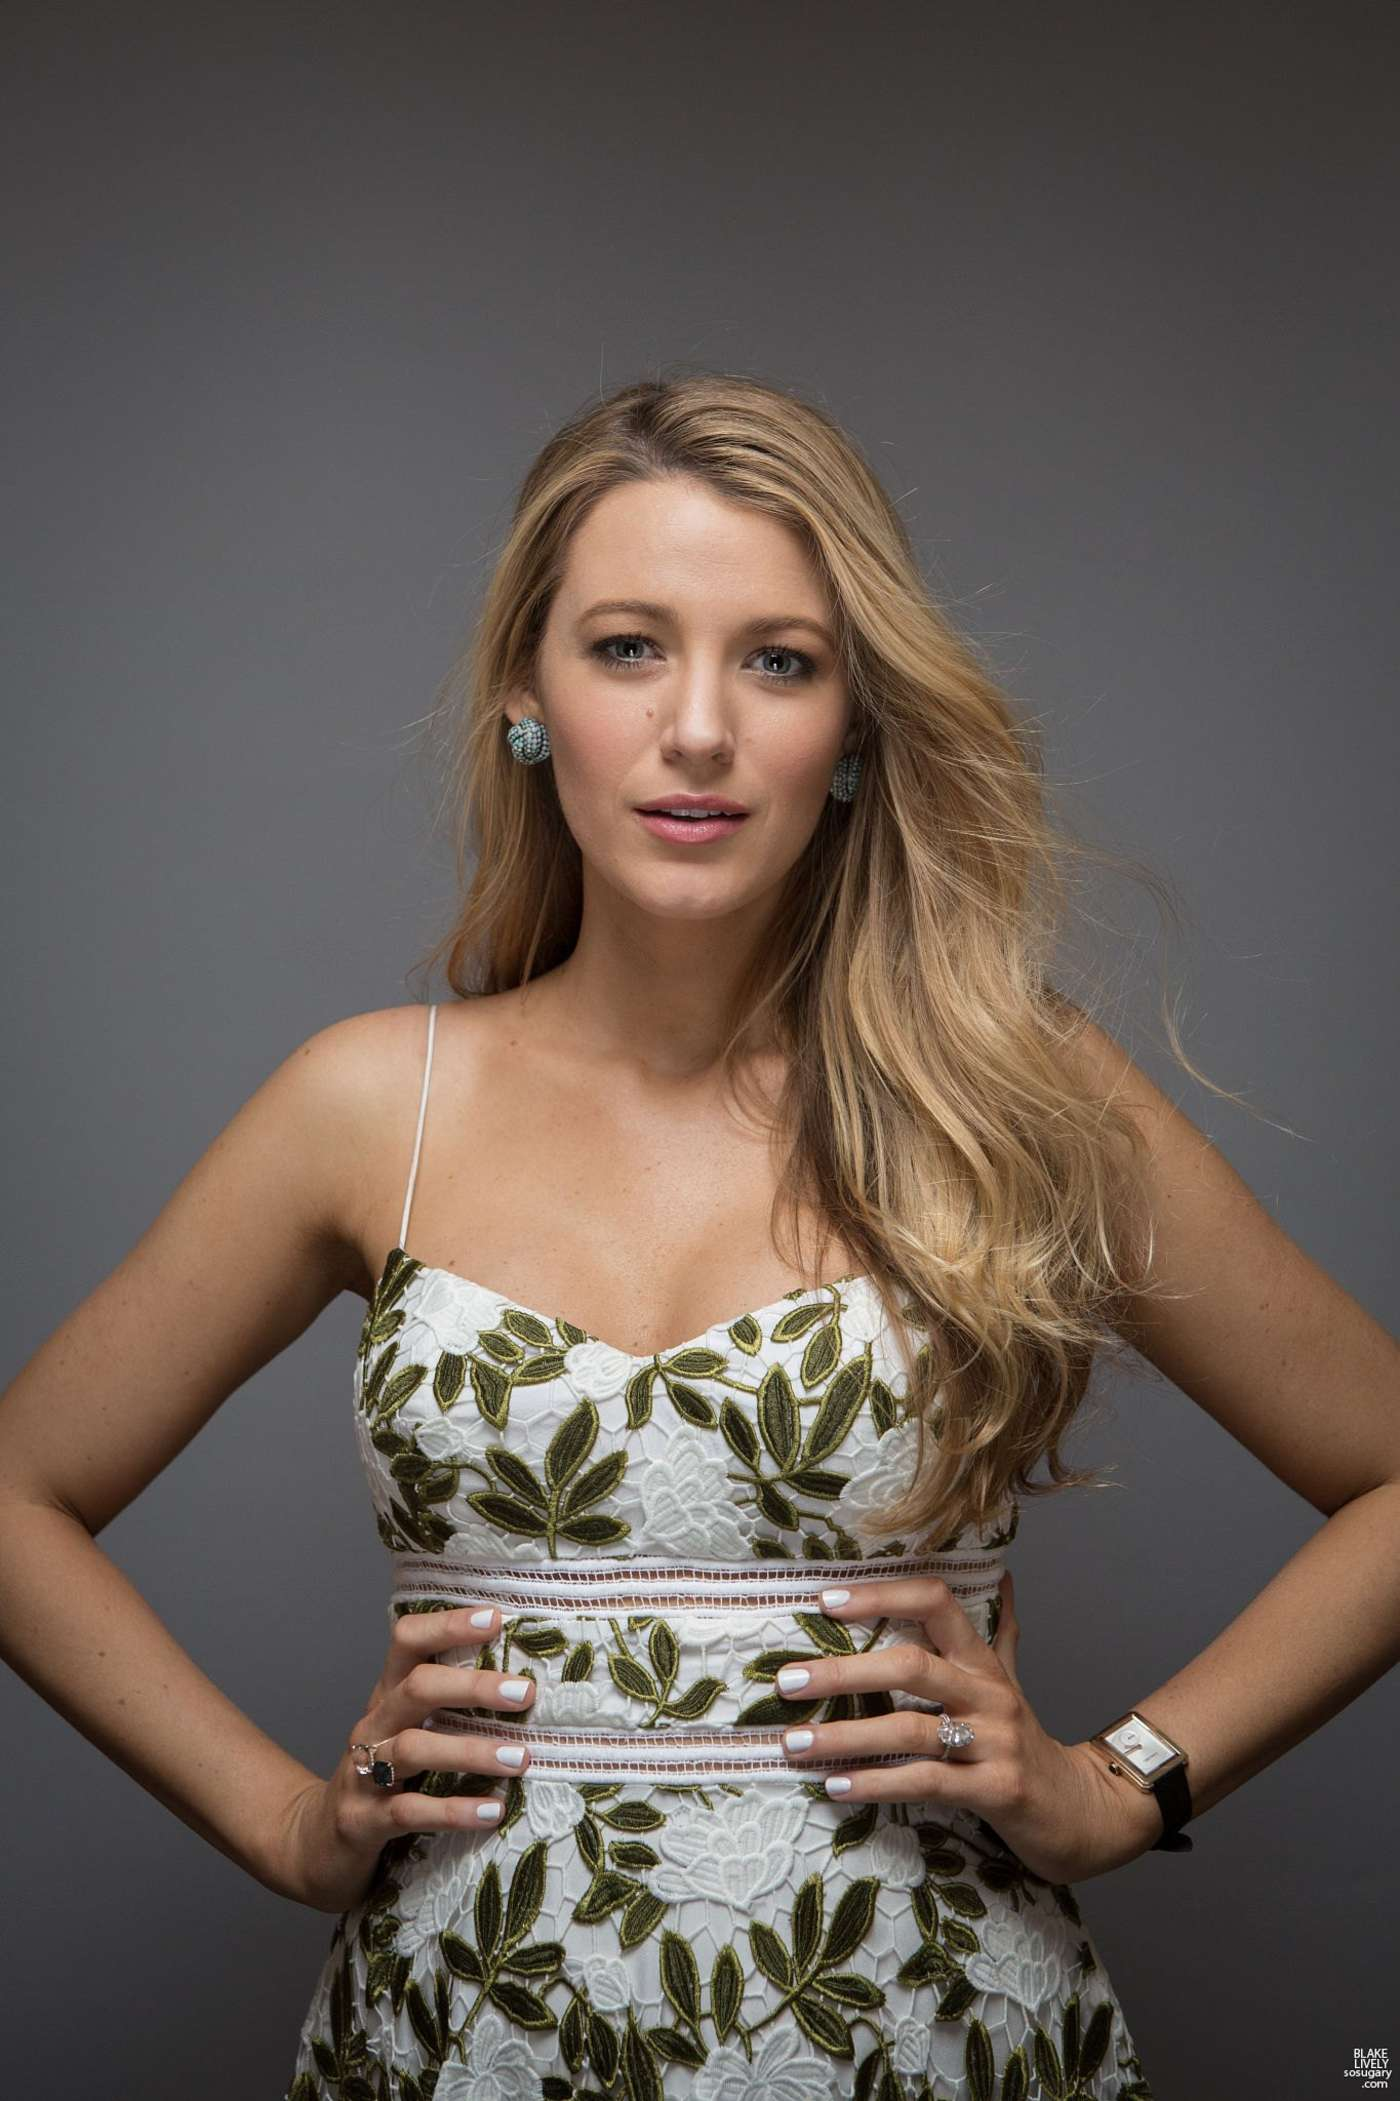 Blake Lively - The Hollywood Reporter Photoshoot (May 2016)